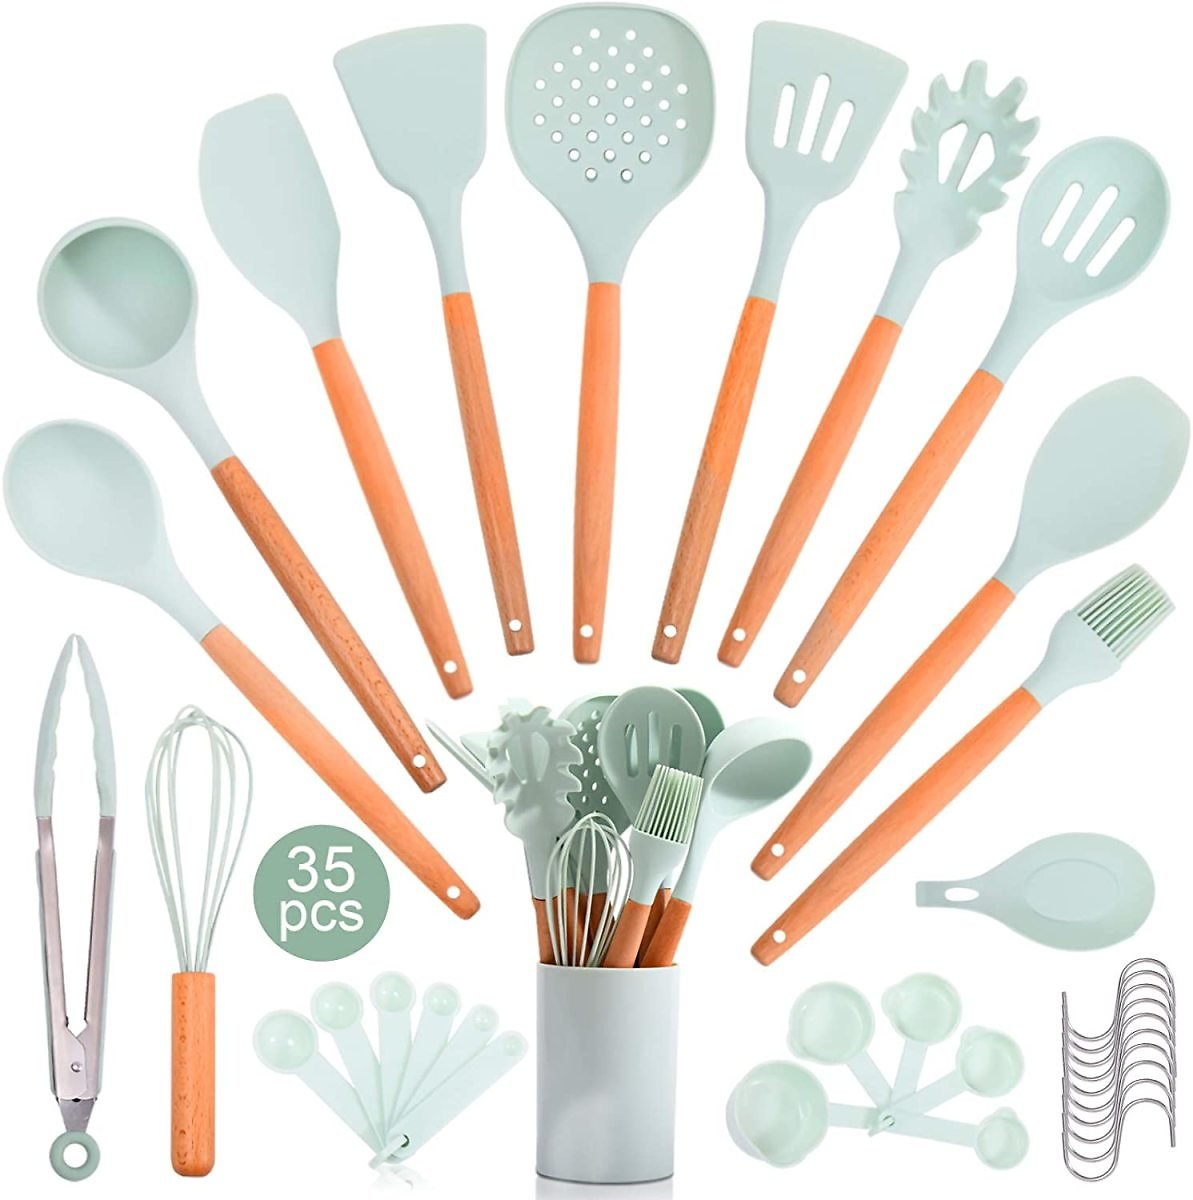 35 Pcs Silicone Kitchen Cooking Utensils Set with Wooden Handle